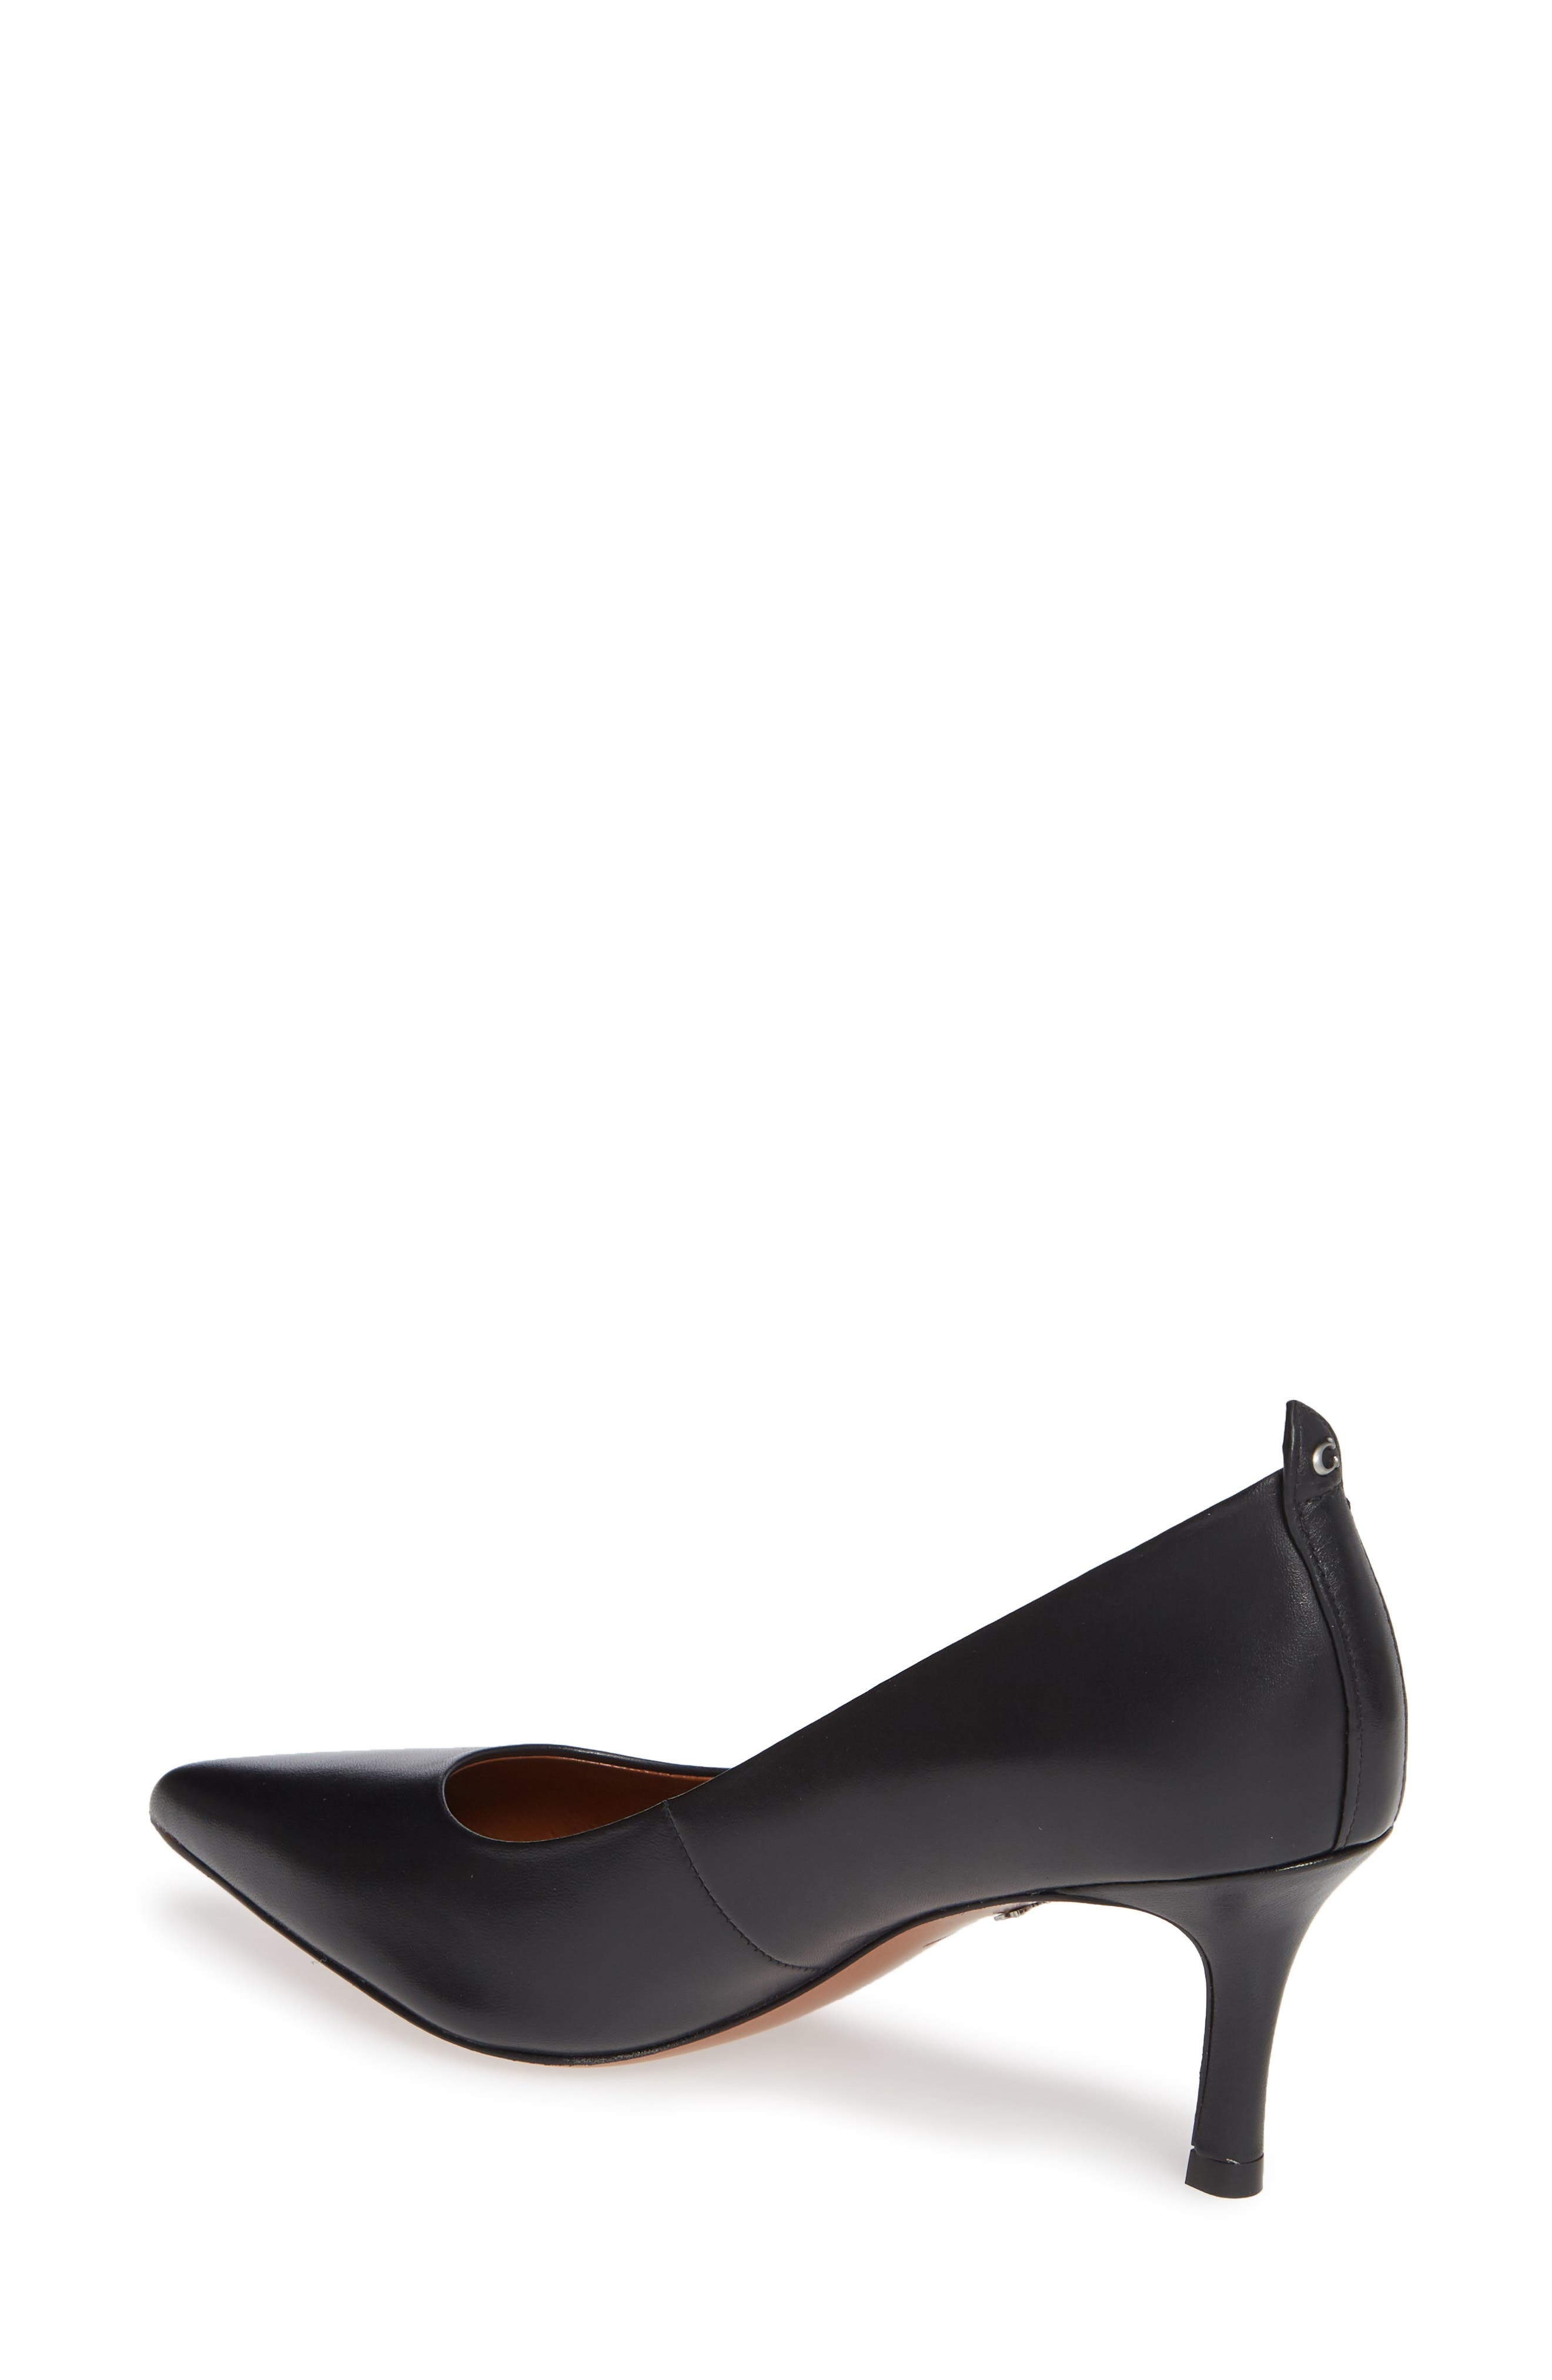 COACH, Waverly Mid Heel Pump, Alternate thumbnail 2, color, BLACK LEATHER